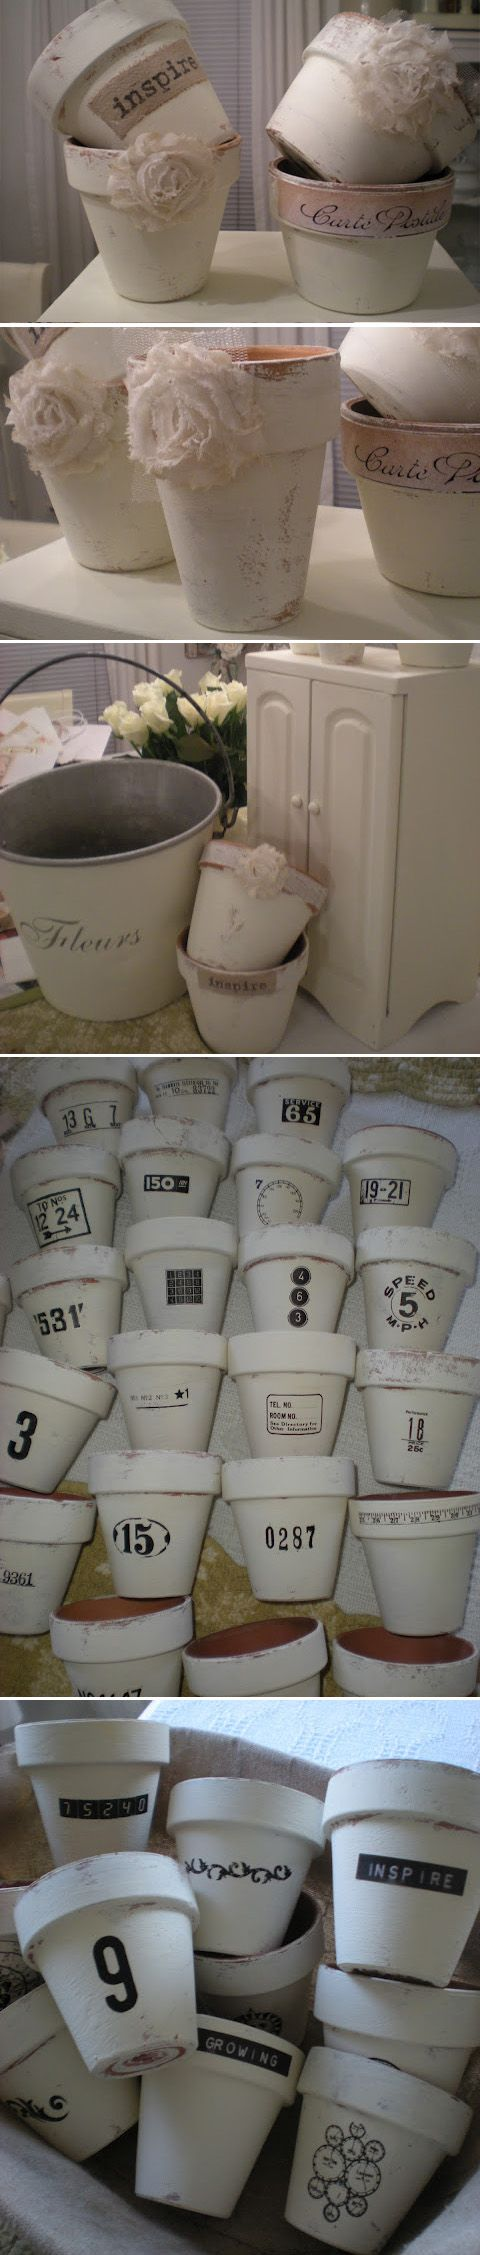 White Chalk Painted Terra Cotta Pots.